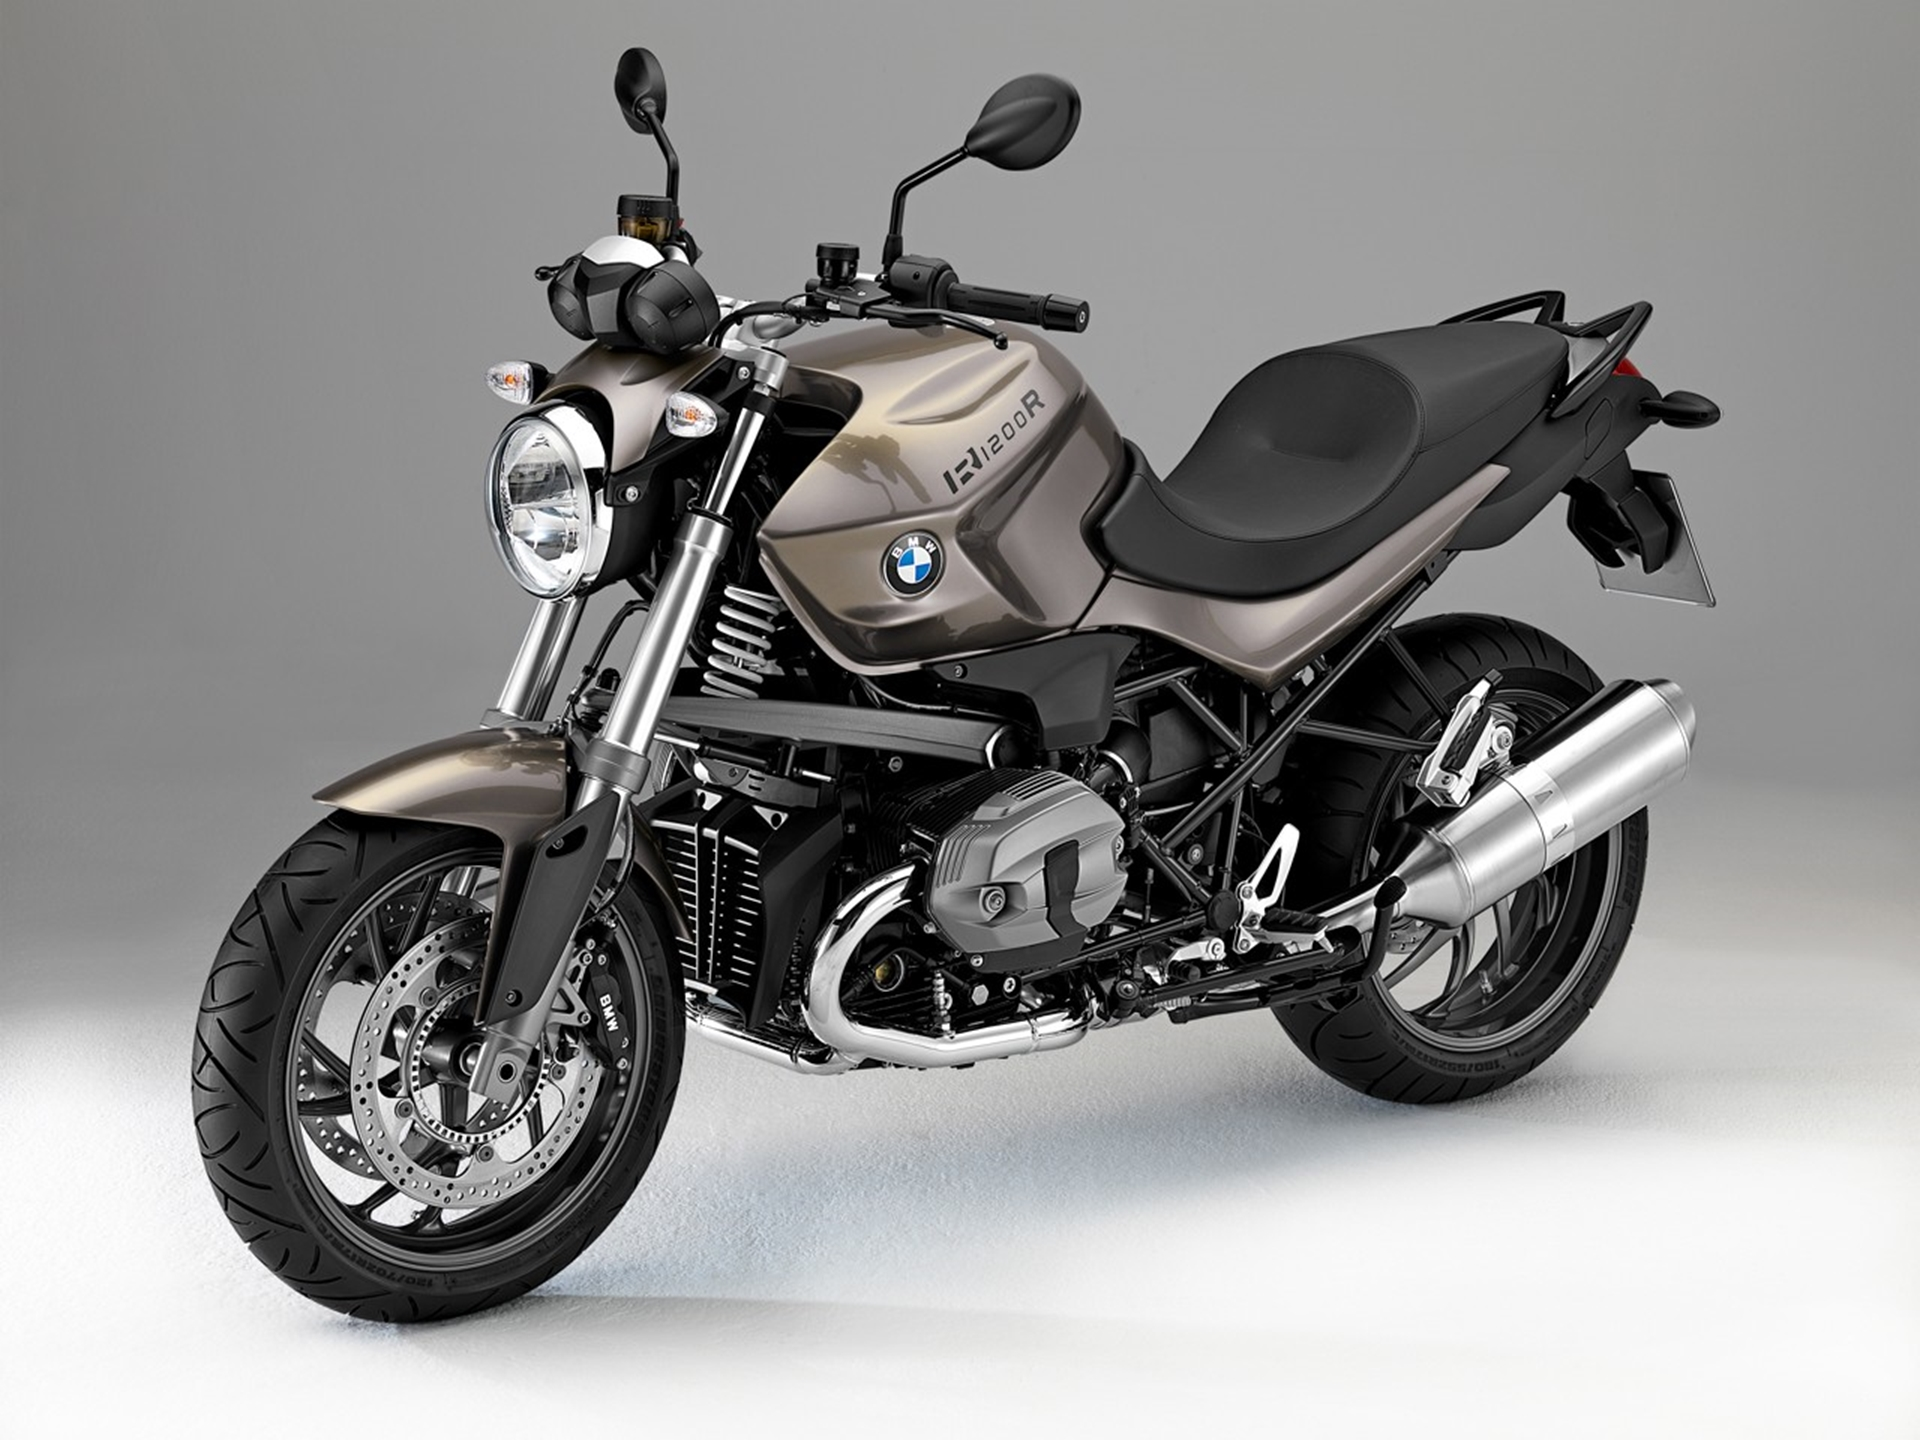 BMW Motorcycle R1200R